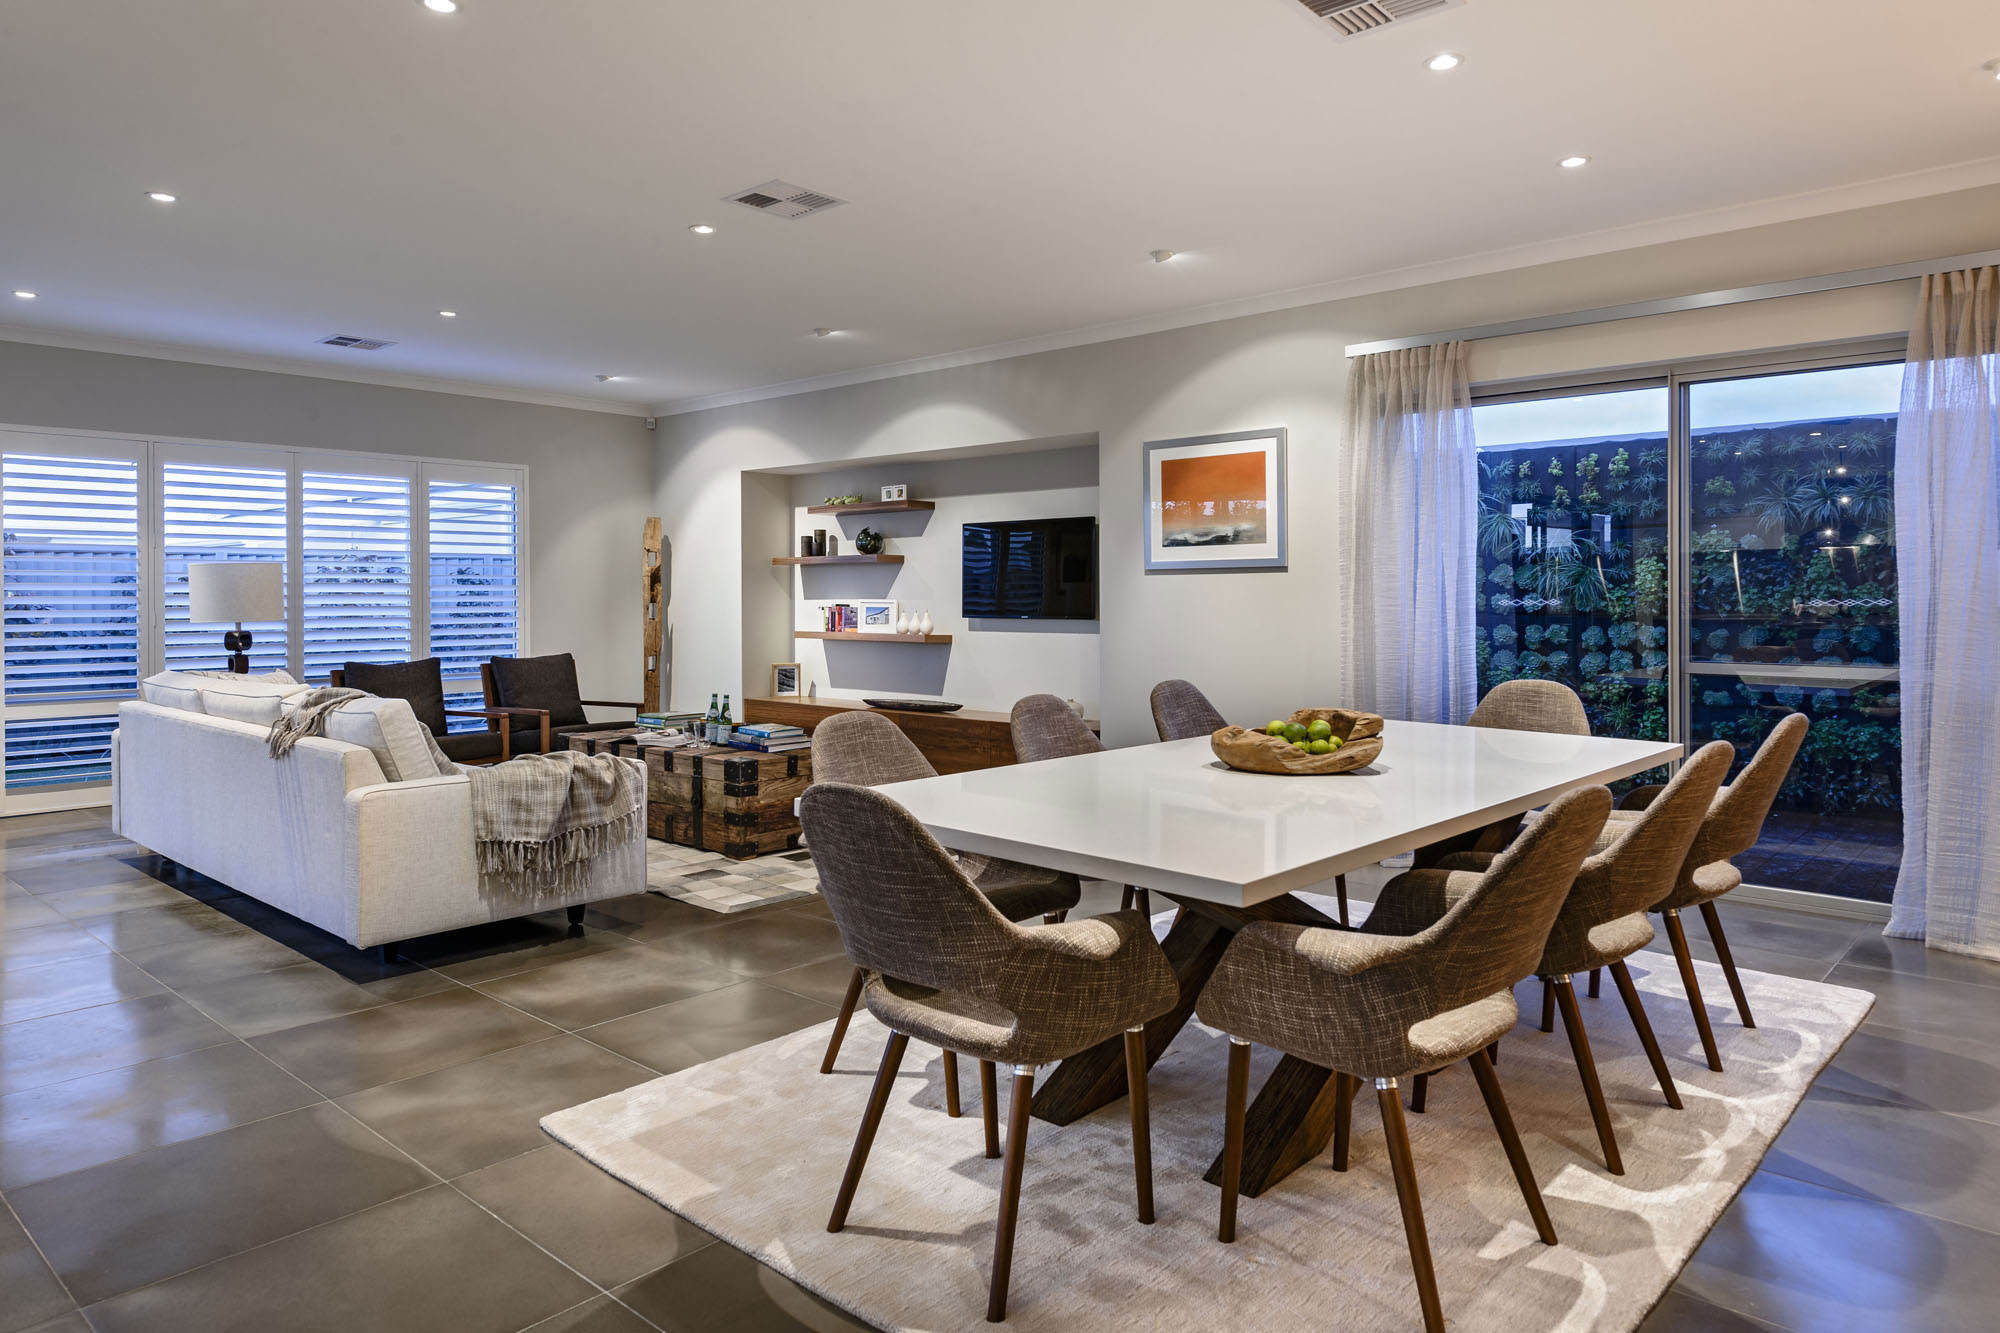 Dining Table, Rug, Open Plan Living, Dining Space, Modern Home in Wandi, Perth